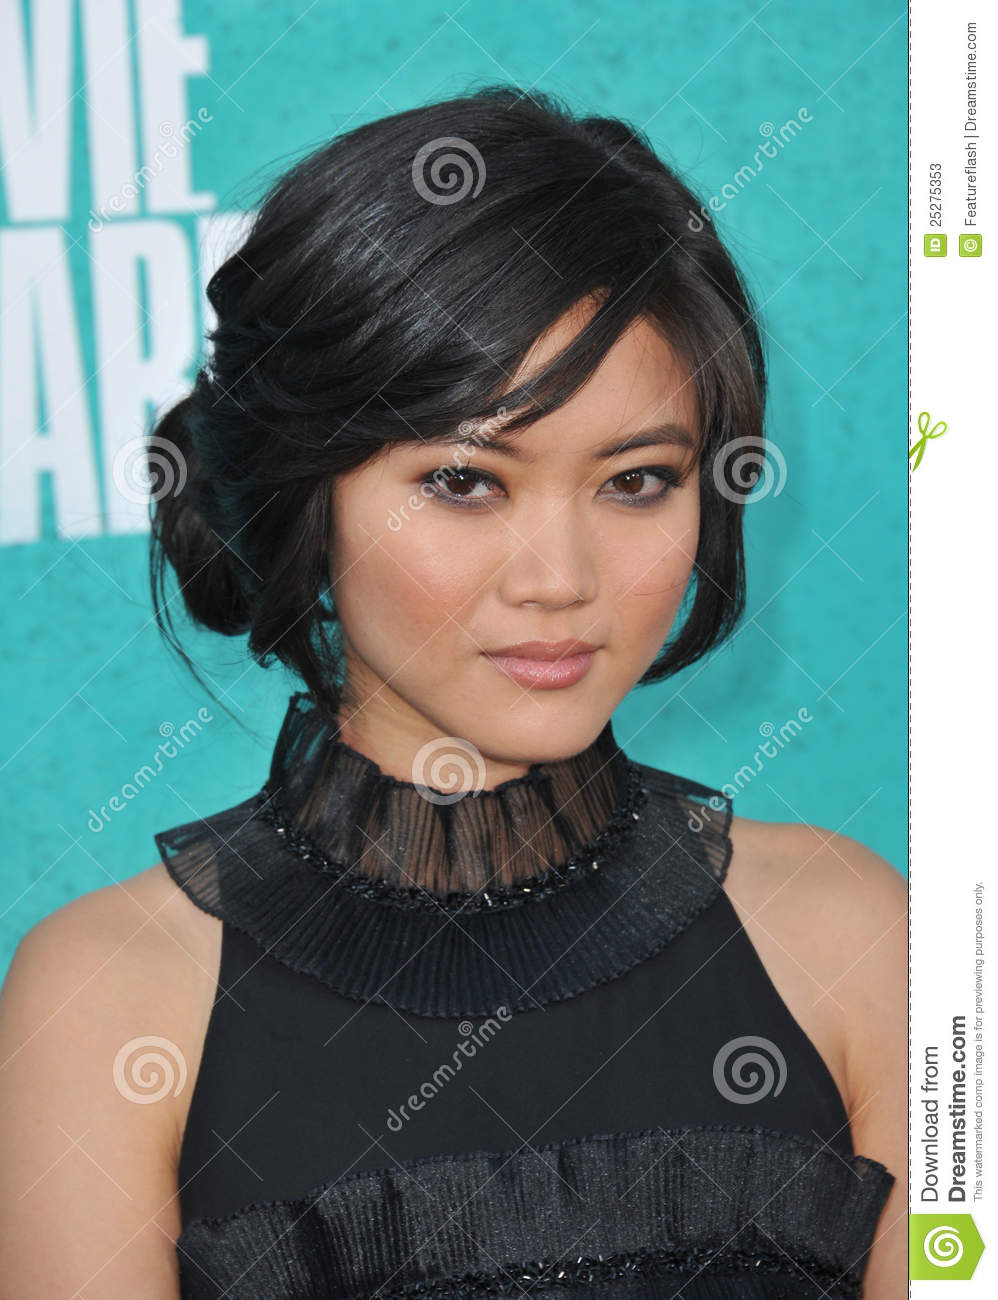 jessica lu twitterjessica lu instagram, jessica lu, jessica lu height, jessica lu american horror story, jessica lu wiki, jessica lu awkward, jessica lu feet, jessica lu leaving awkward, jessica lu hot, jessica lu pitch perfect, jessica lu imdb, jessica lu facebook, jessica lu twitter, jessica lu linkedin, jessica lu astronomy, jessica lu boyfriend, jessica lu ahs, jessica lu bikini, jessica lu umd